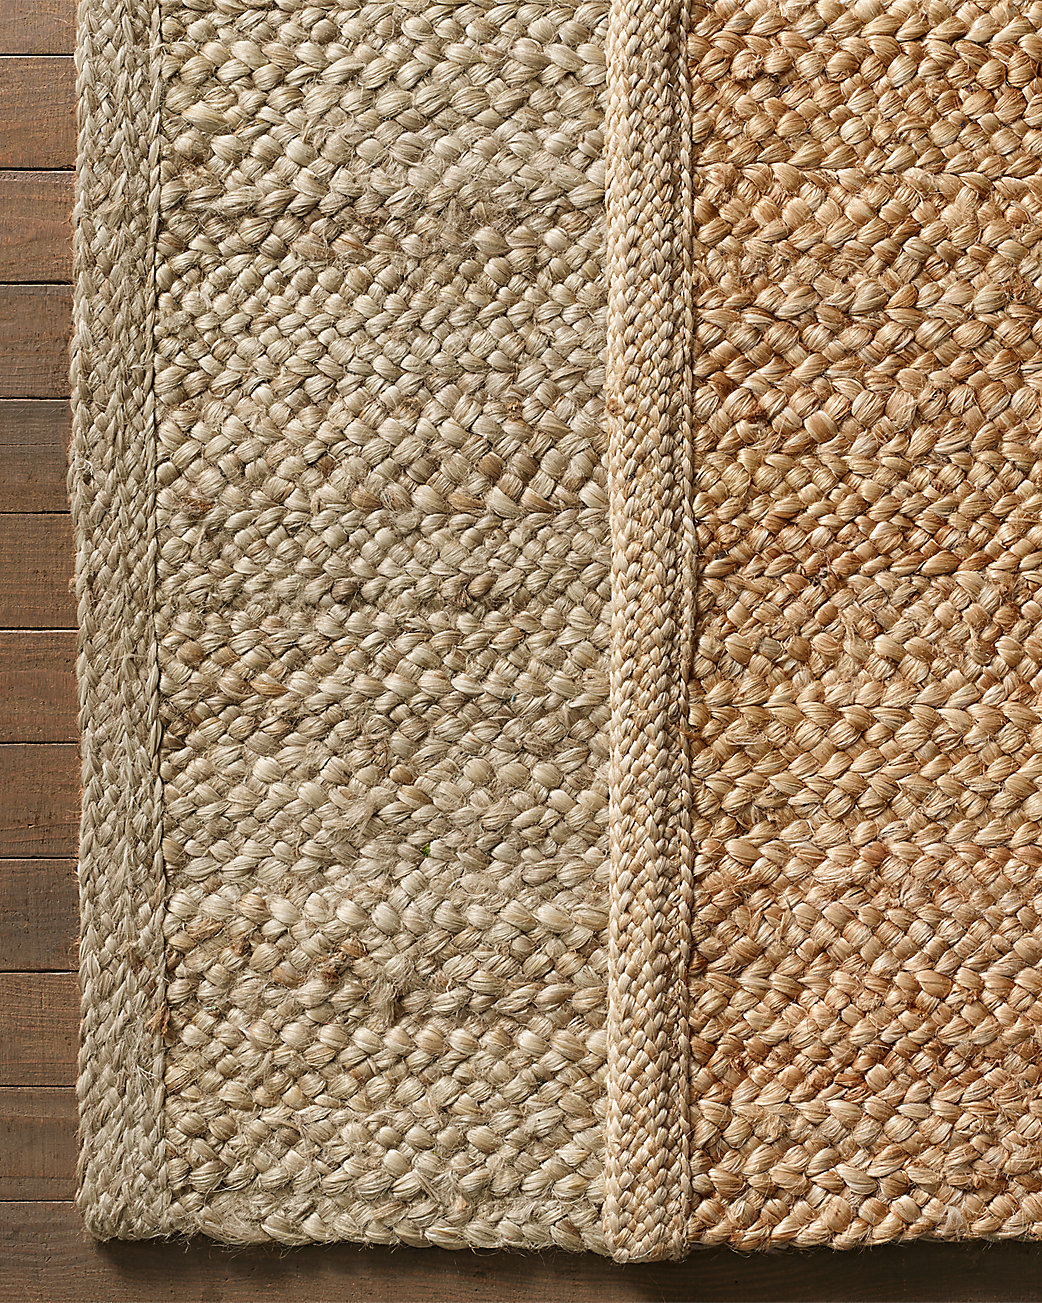 Chunky braided jute rug for Restoration hardware rugs on sale